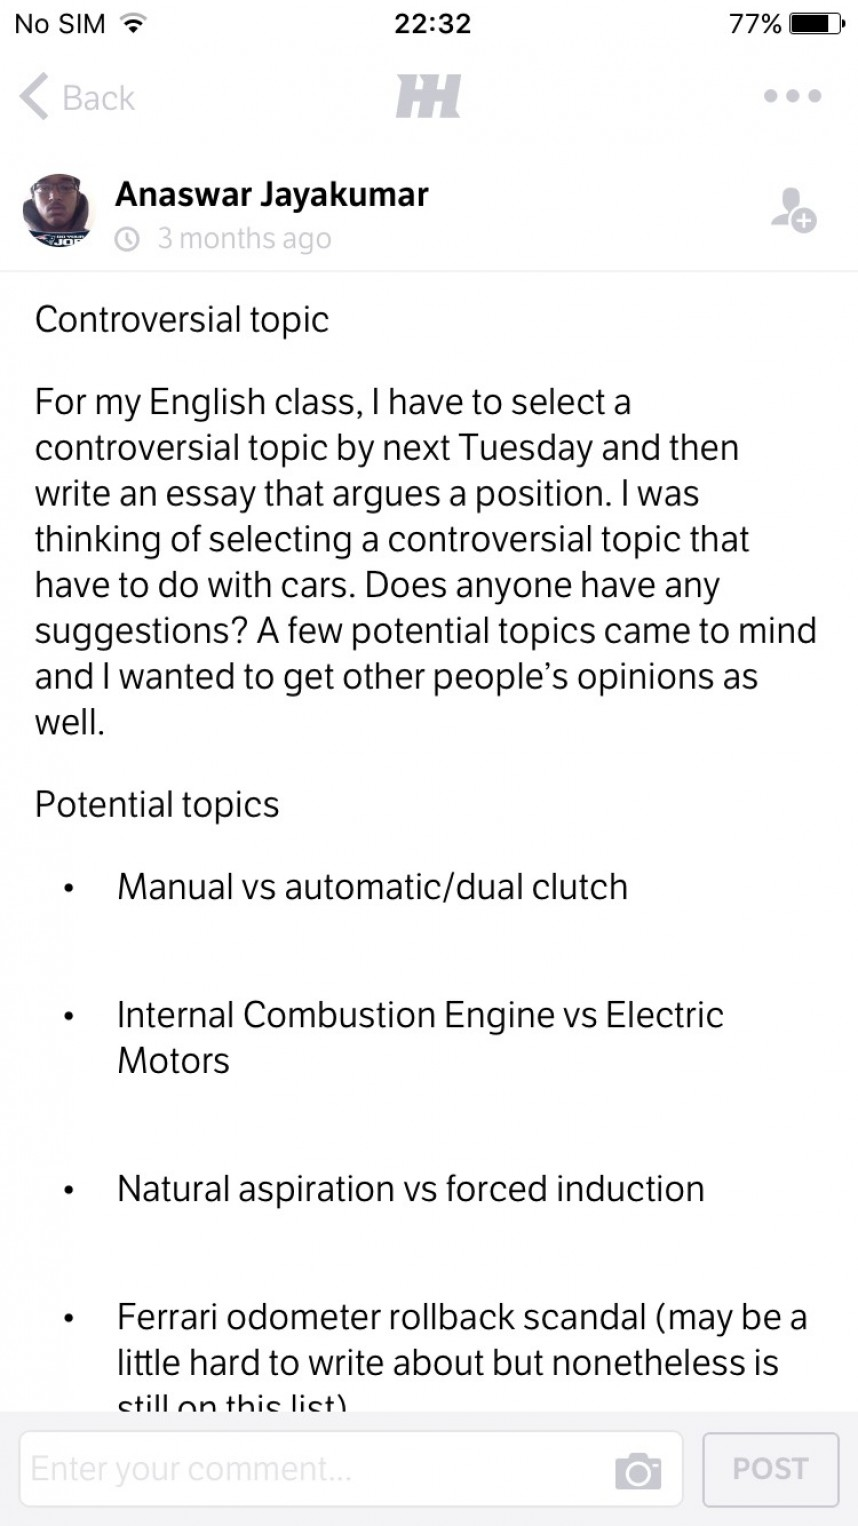 011 Controversial Topic Essay Topics Example Research Paper Outline20 Breathtaking Issue 868